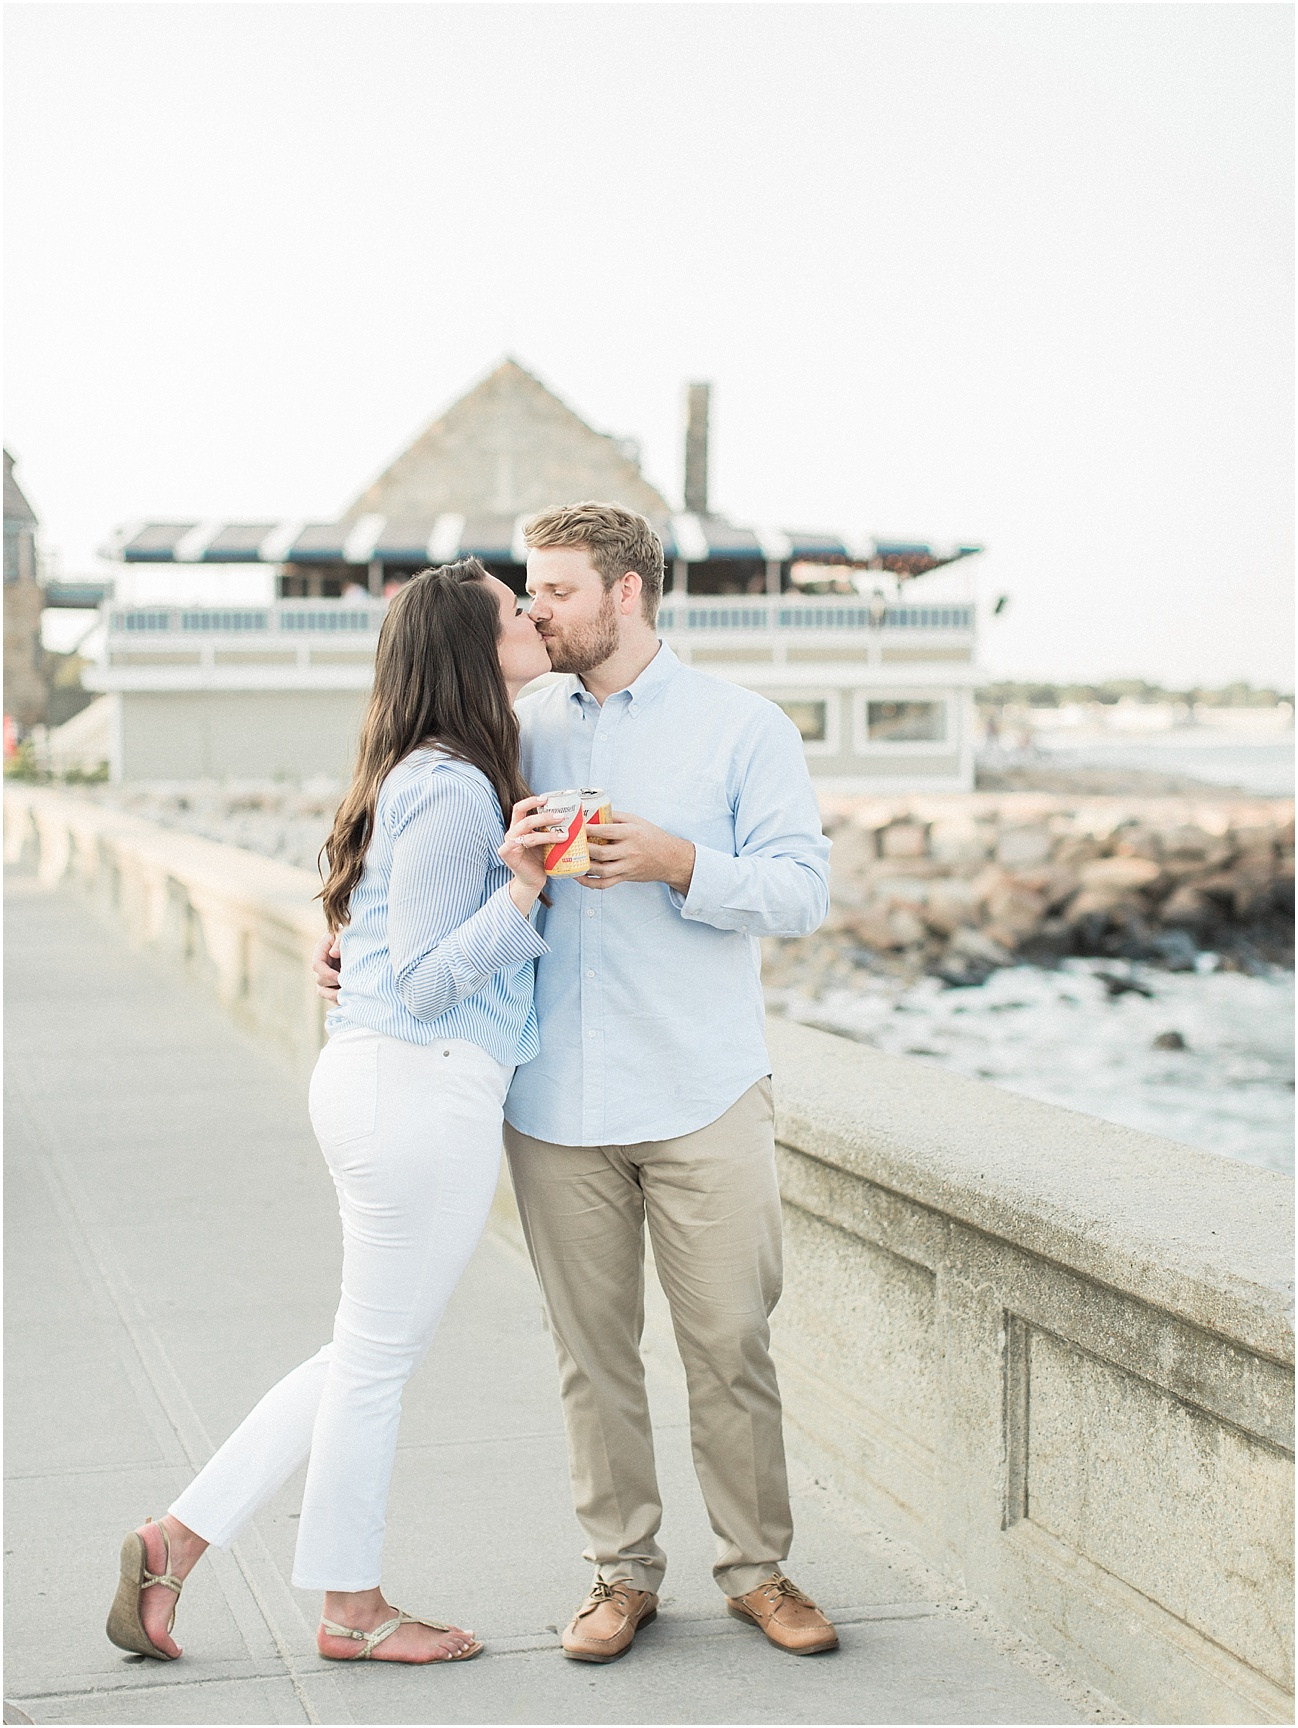 heather_chris_narragansett_beer_cliff_walk_beach_rhode_island_ri_cape_cod_boston_wedding_photographer_meredith_jane_photography_photo_0738.jpg